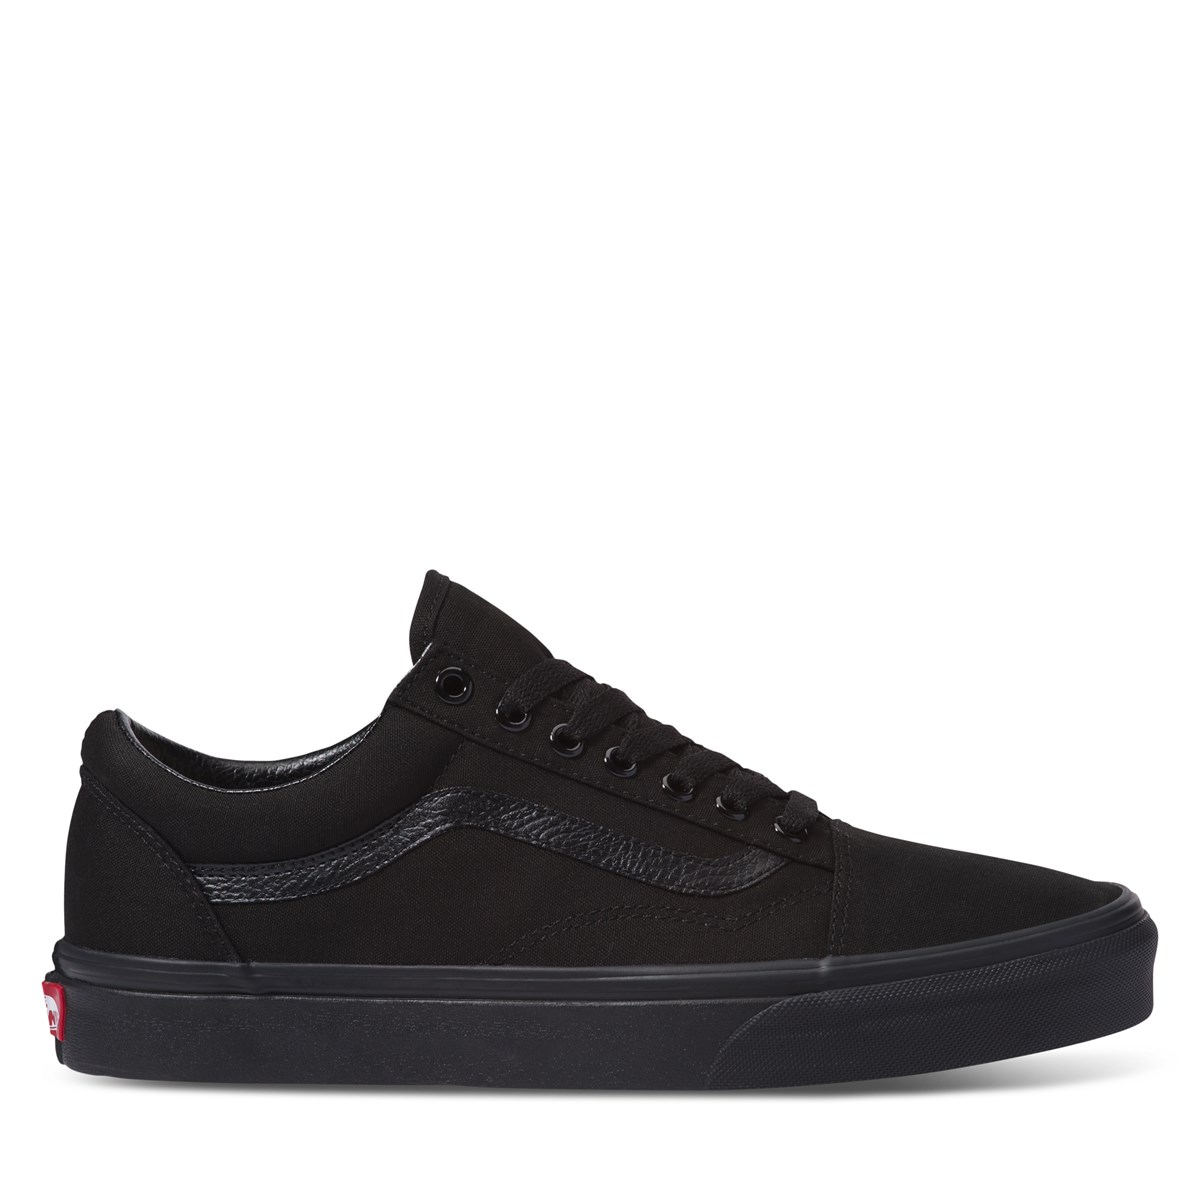 Men's Old Skool Sneakers in Black